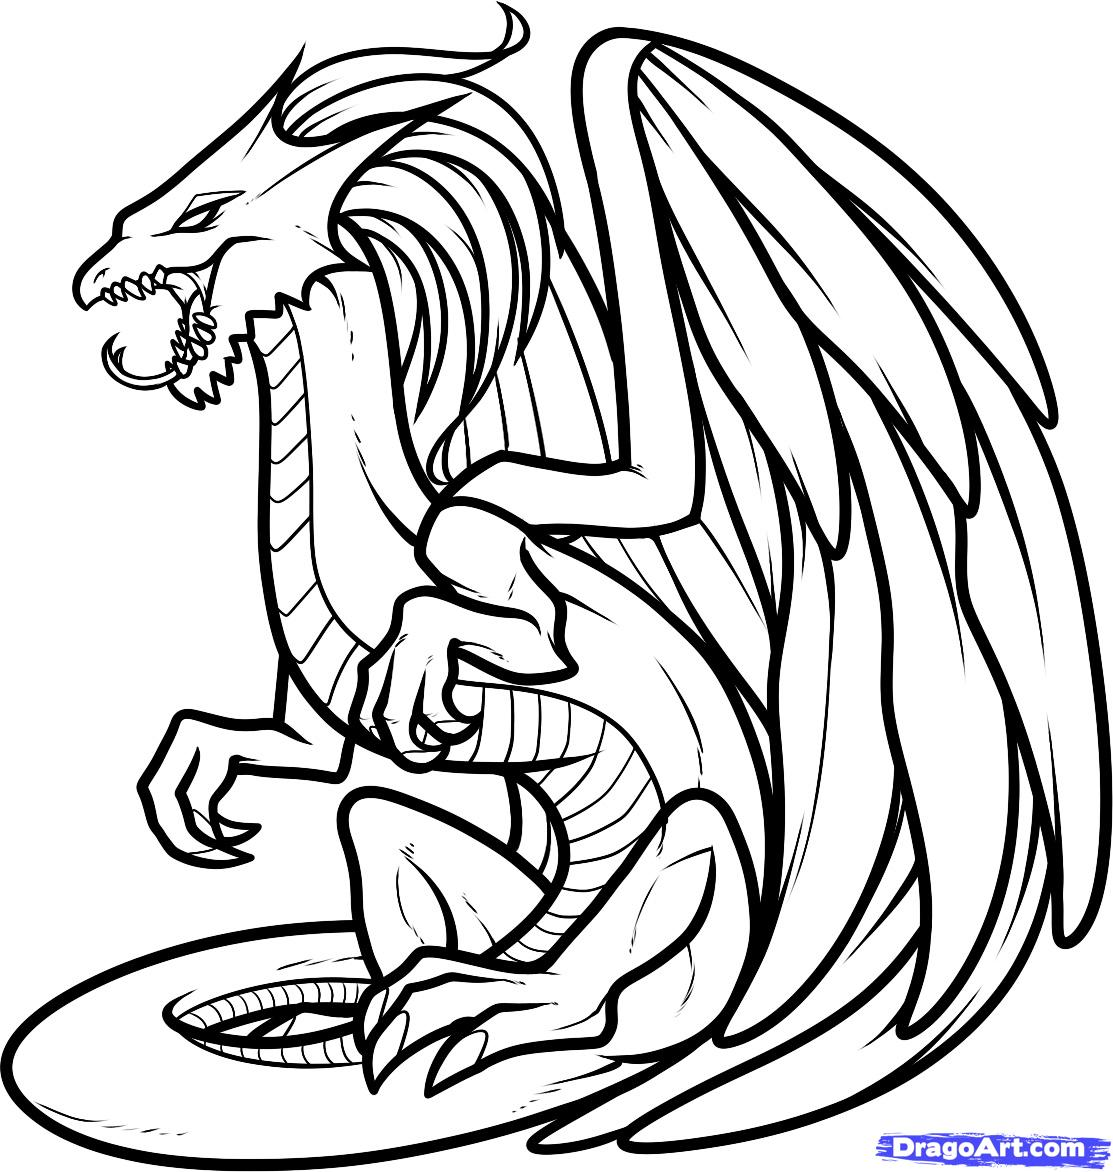 coloring dragons cute dragon coloring pages getcoloringpagescom coloring dragons